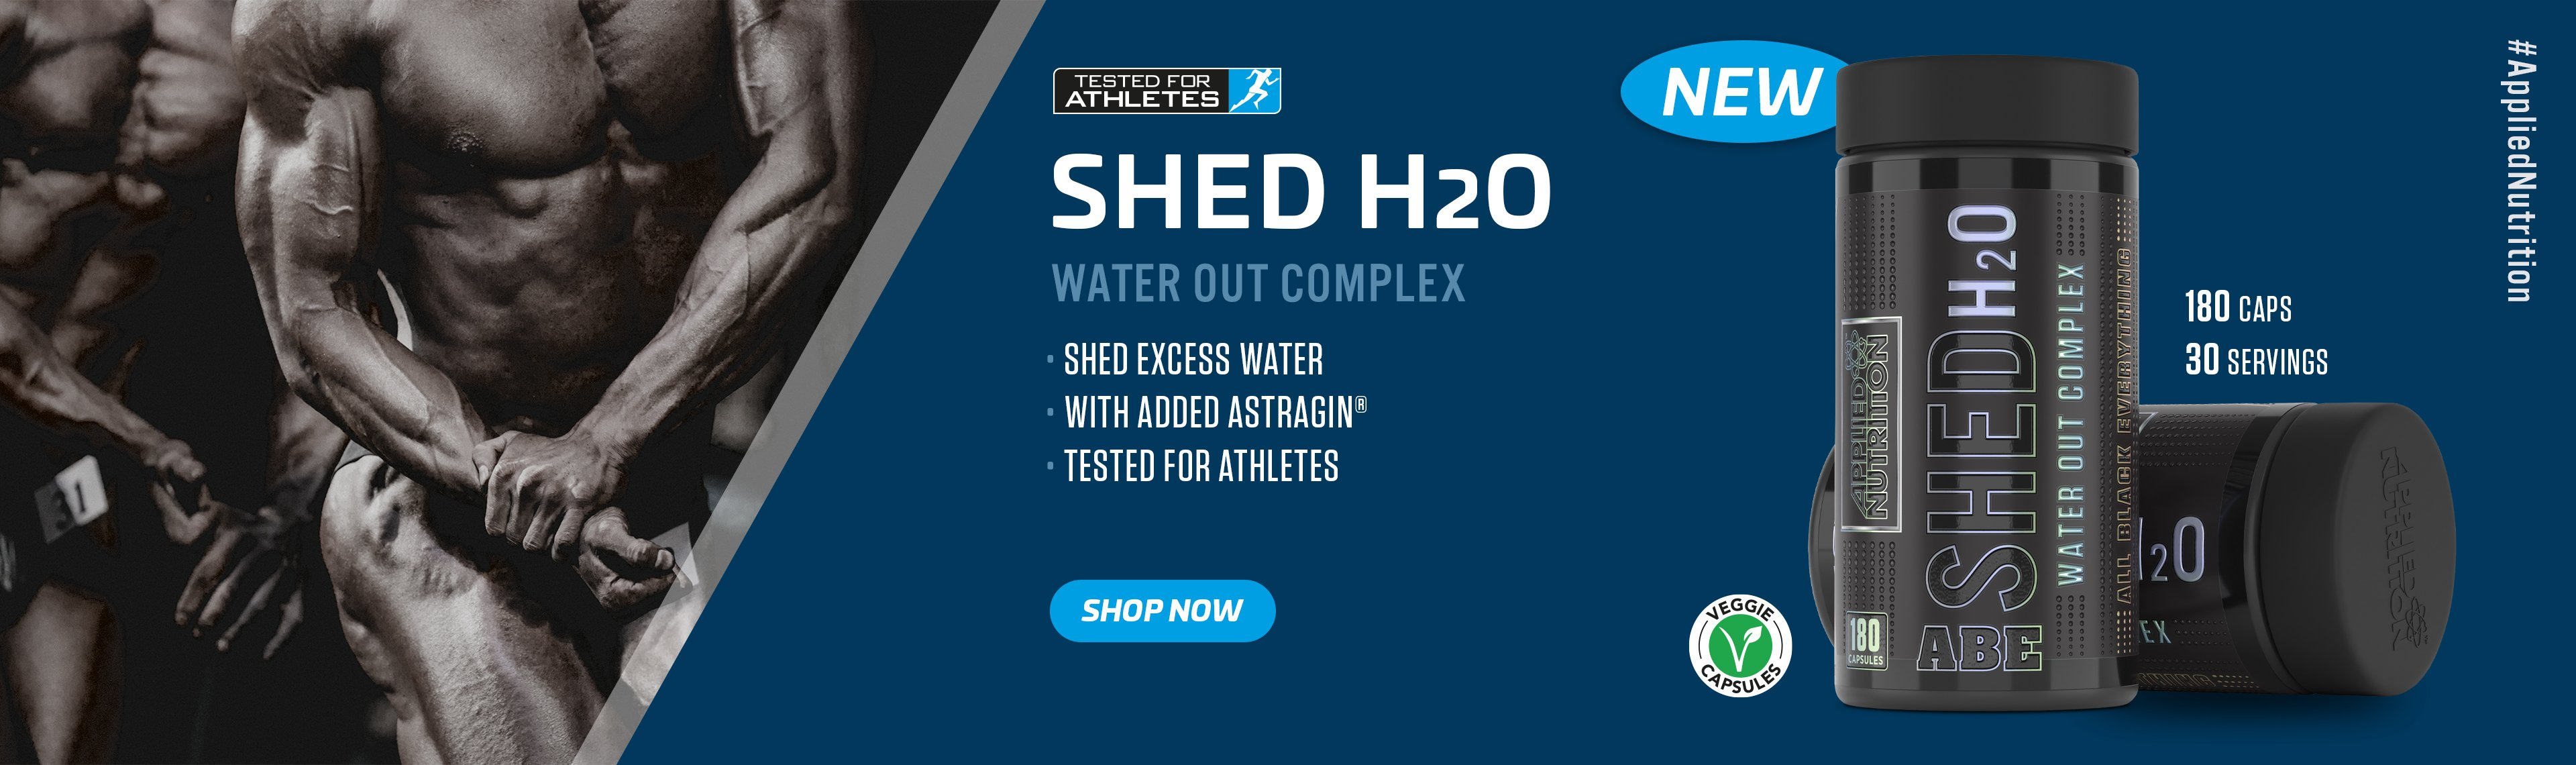 Shed H2O water out complex